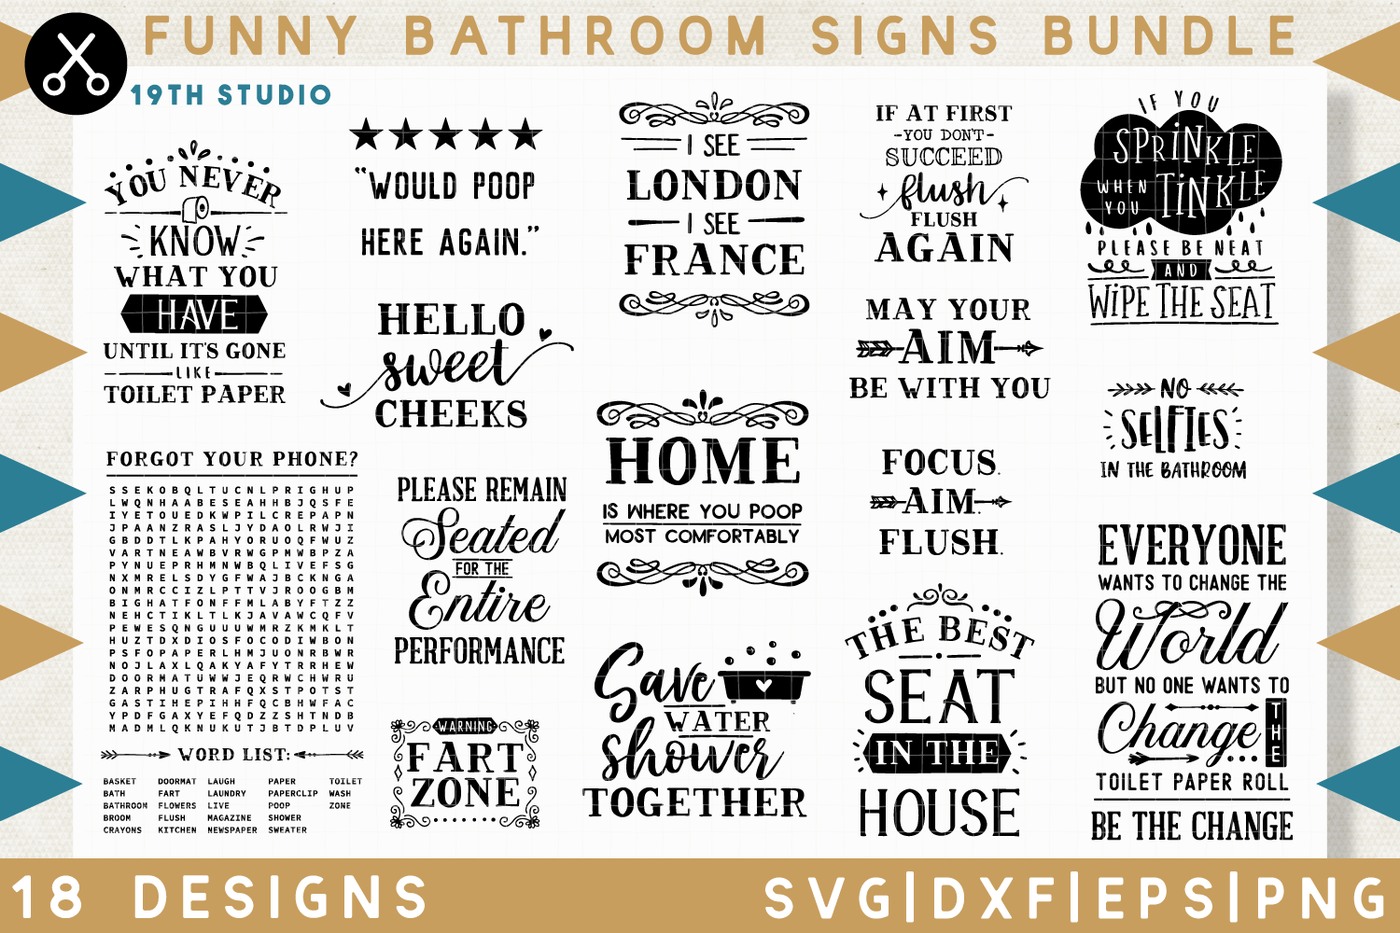 Funny Bathroom Signs Svg Bundle M32 By 19th Studio